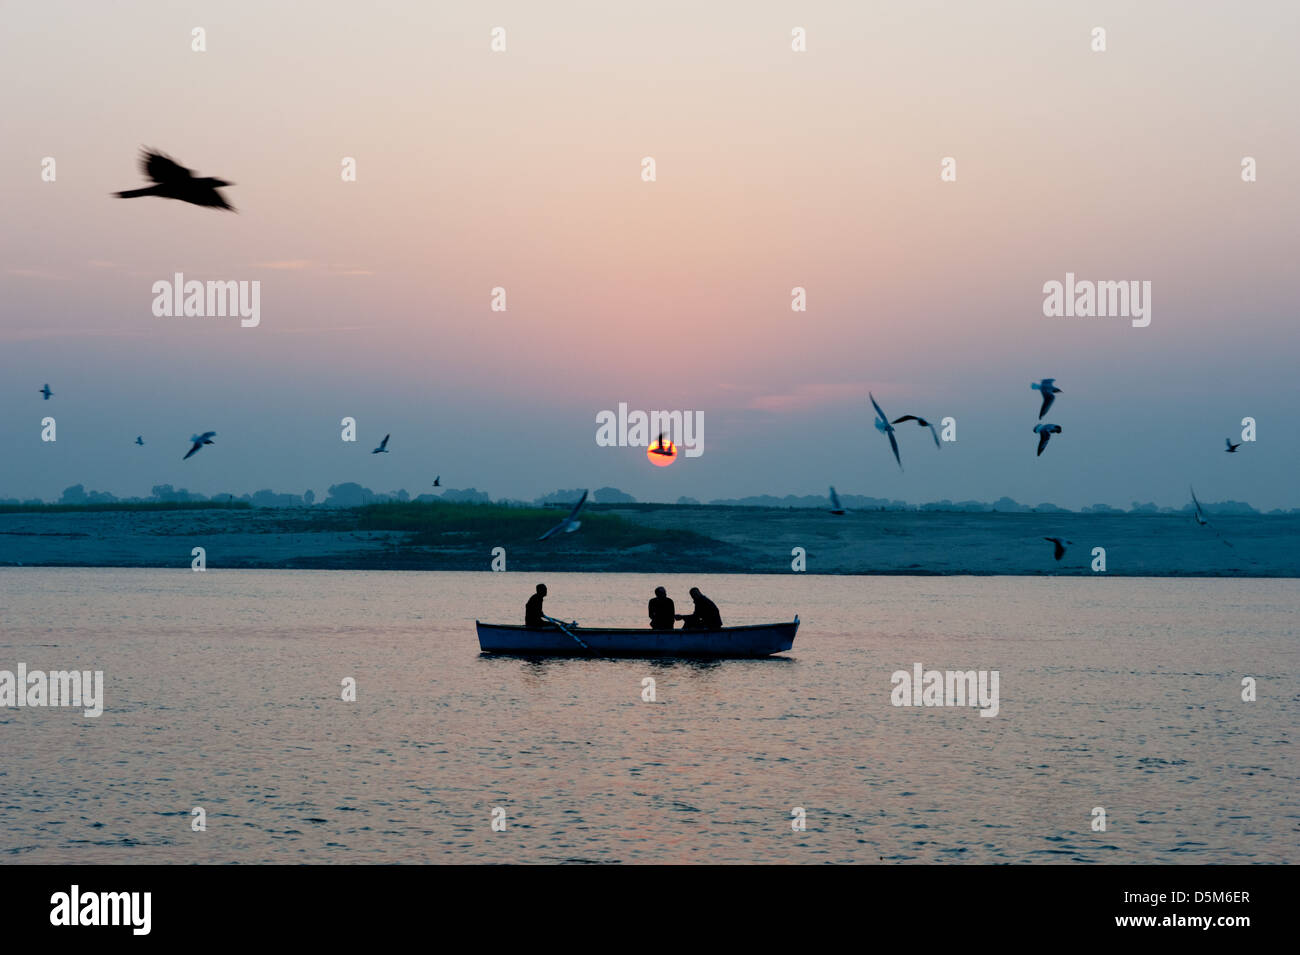 Tourists watch the sunrise on the River Ganges/Ganga at Varanasi. - Stock Image